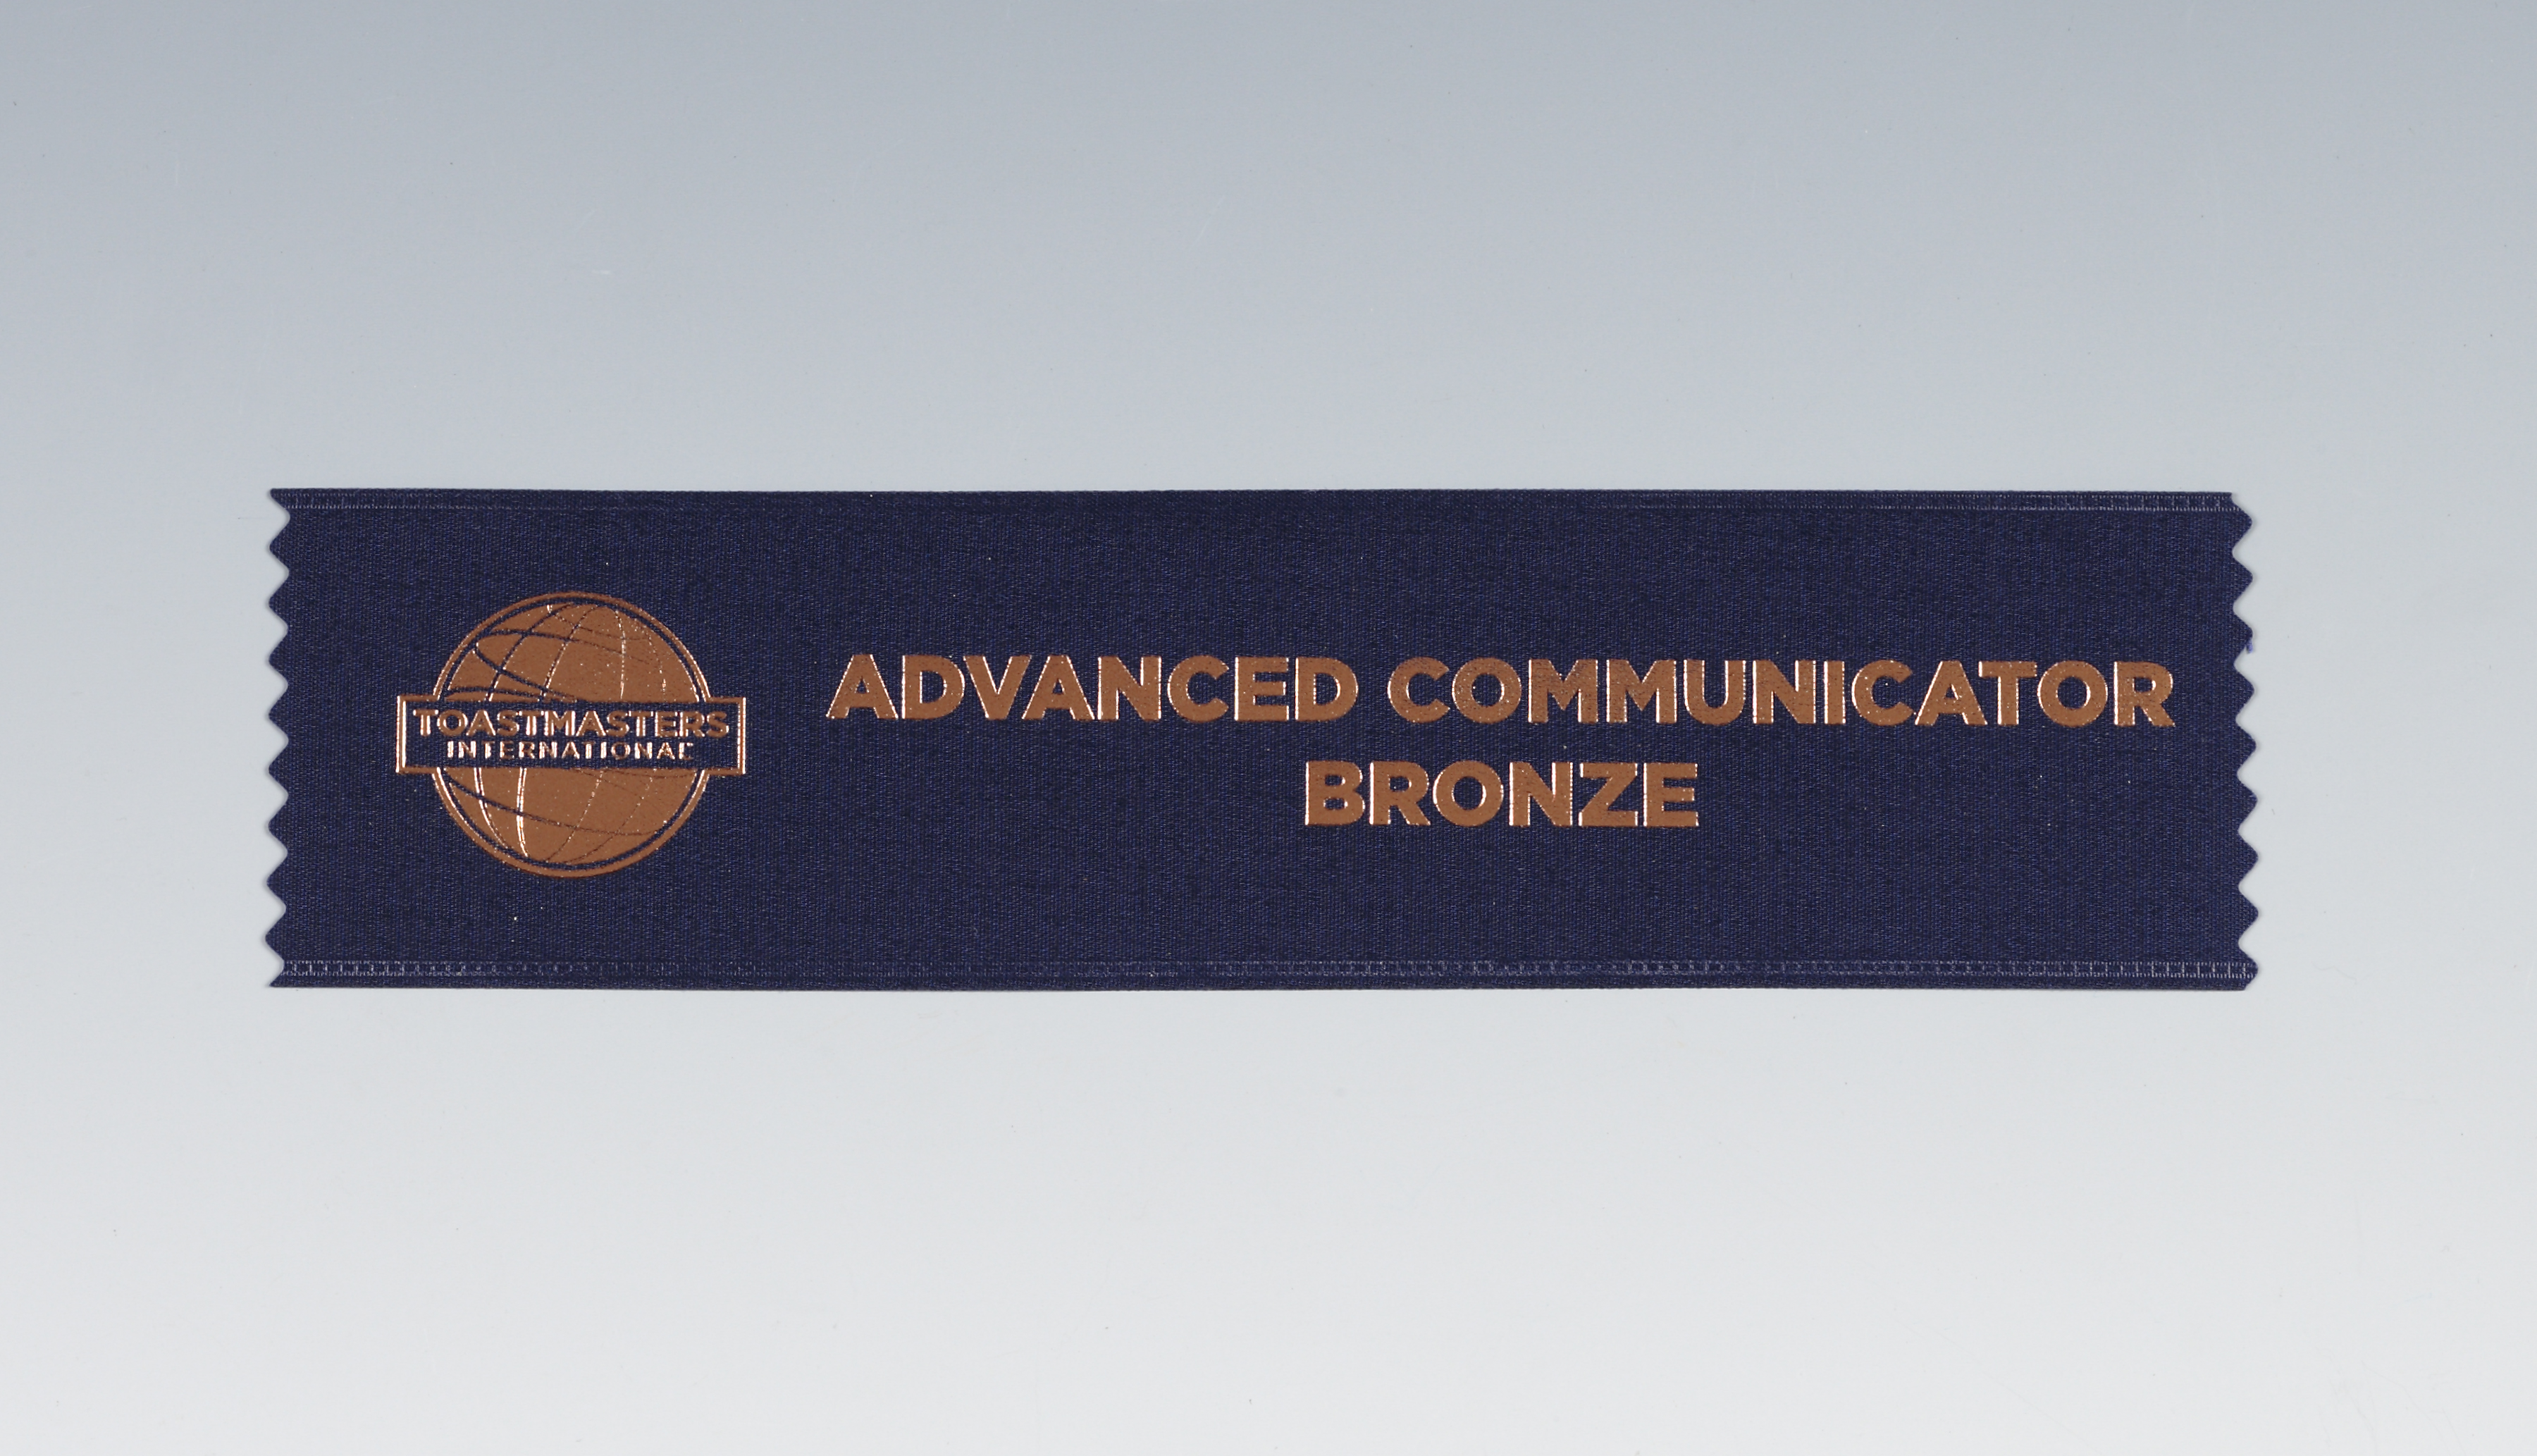 Advanced Communicator Bronze Ribbon